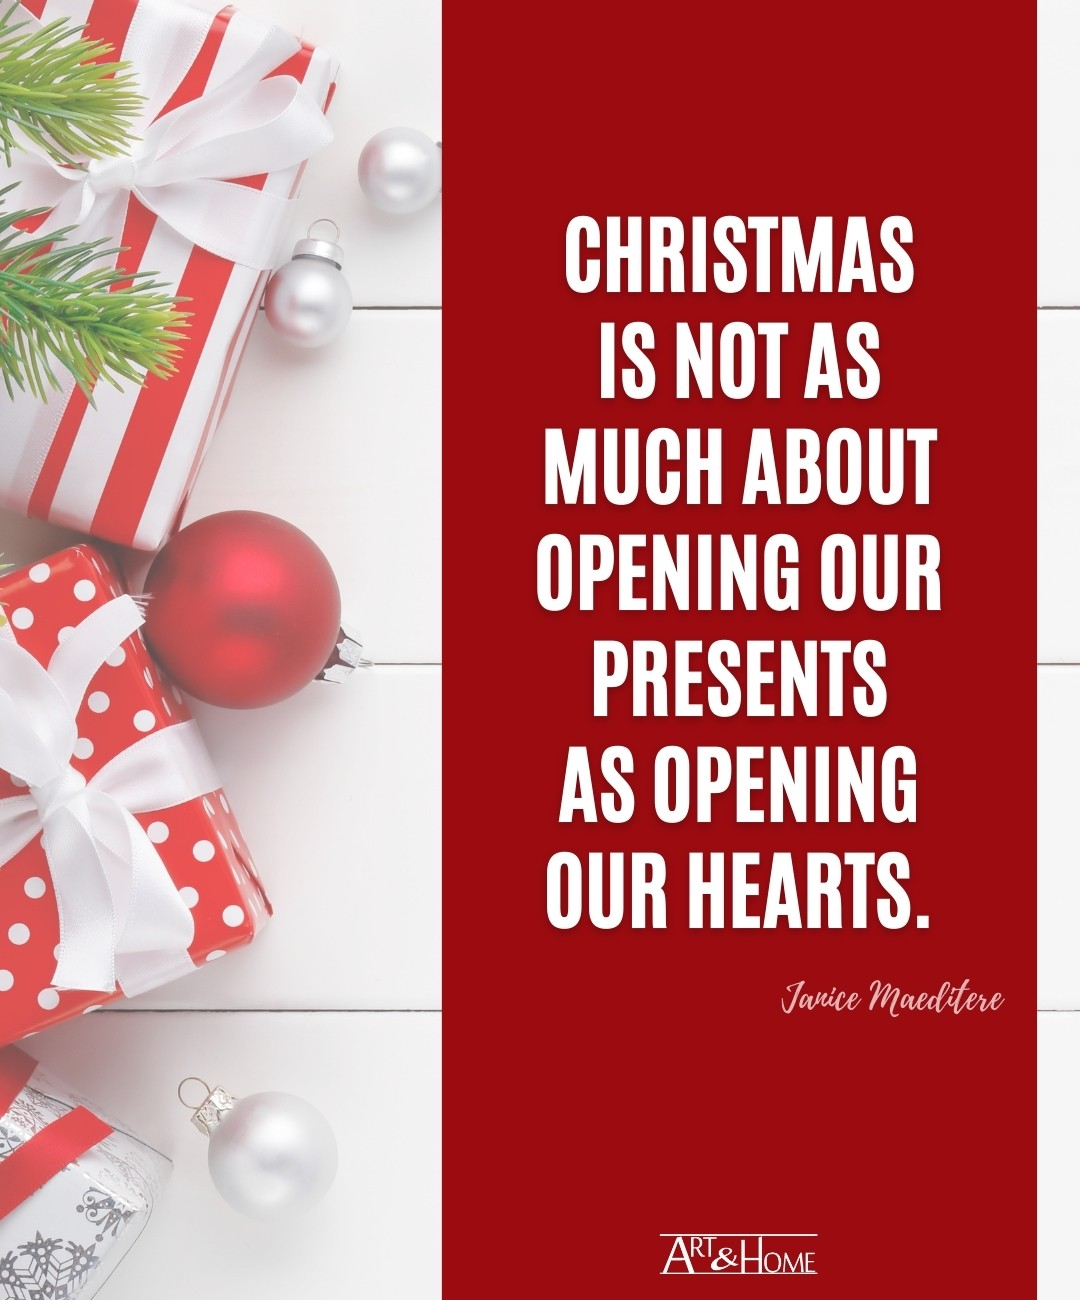 Christmas Quote About Opening Presents & Hearts